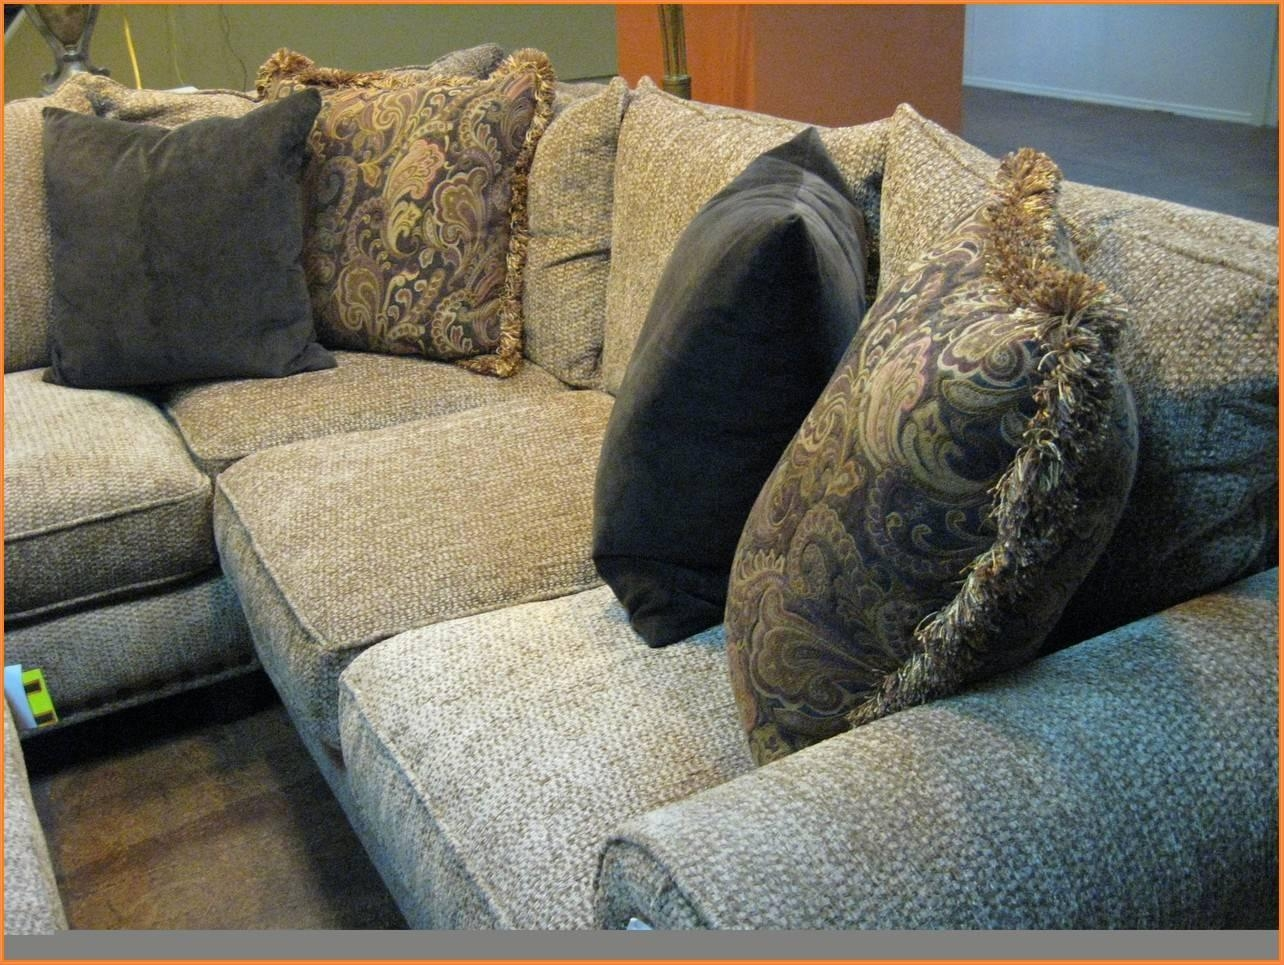 Down Filled Sectional Sofa | Berg Home Design Intended For Down Filled Sofas And Sectionals (Image 1 of 15)